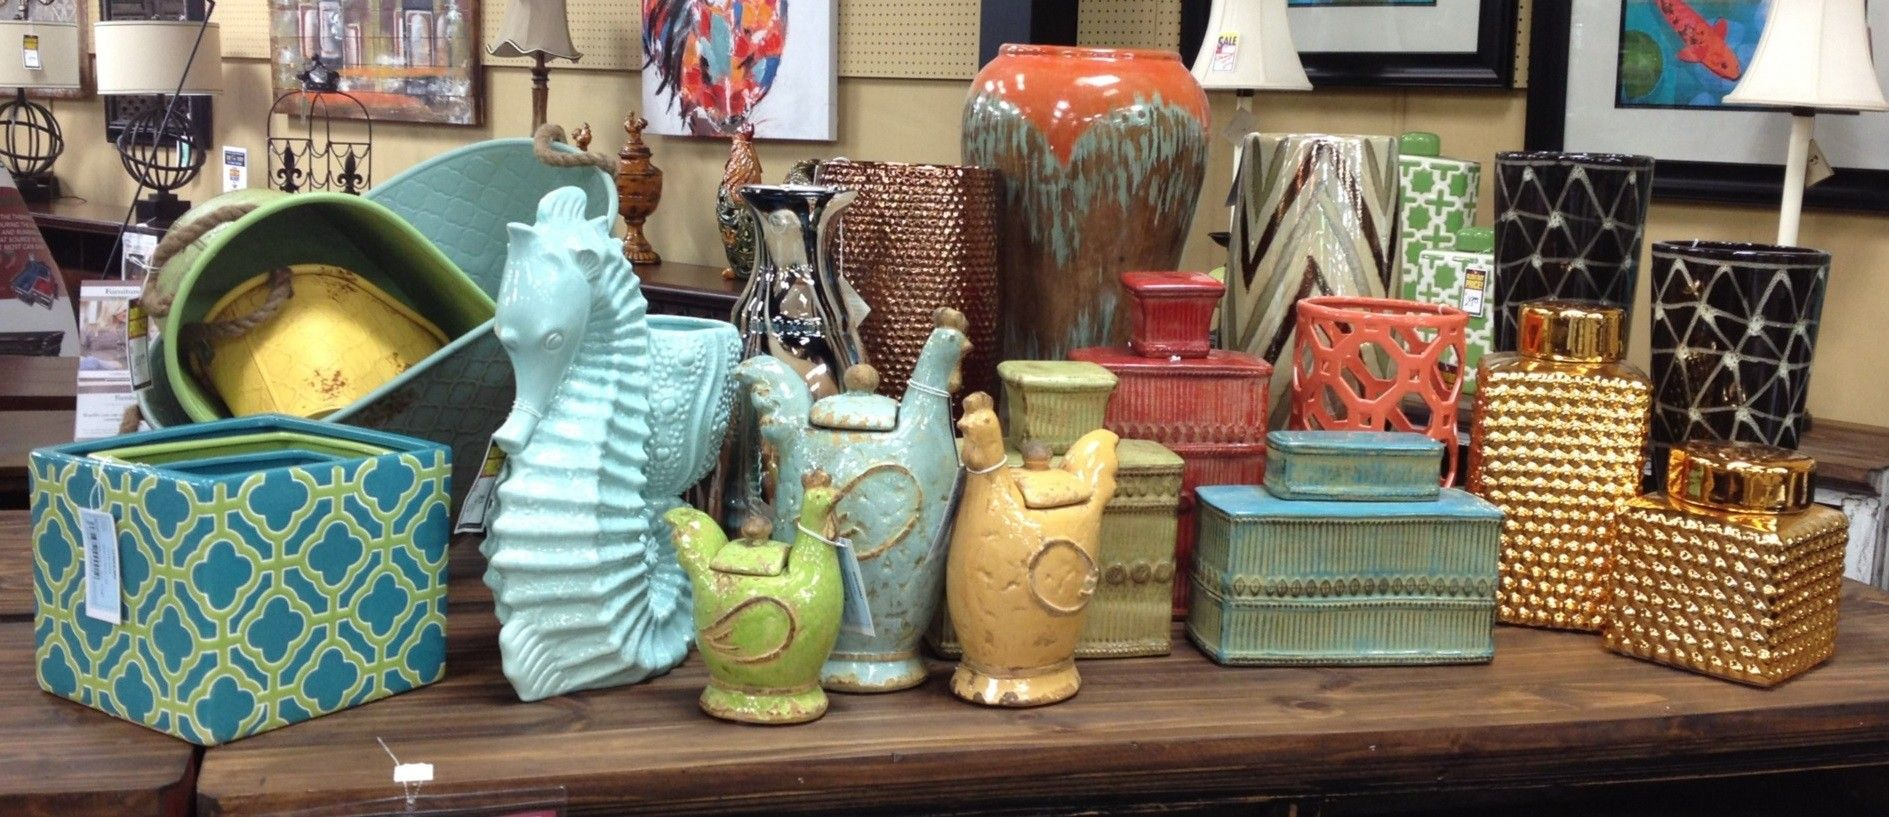 imax accessories, market, Home Furniture, ceramic, pottery